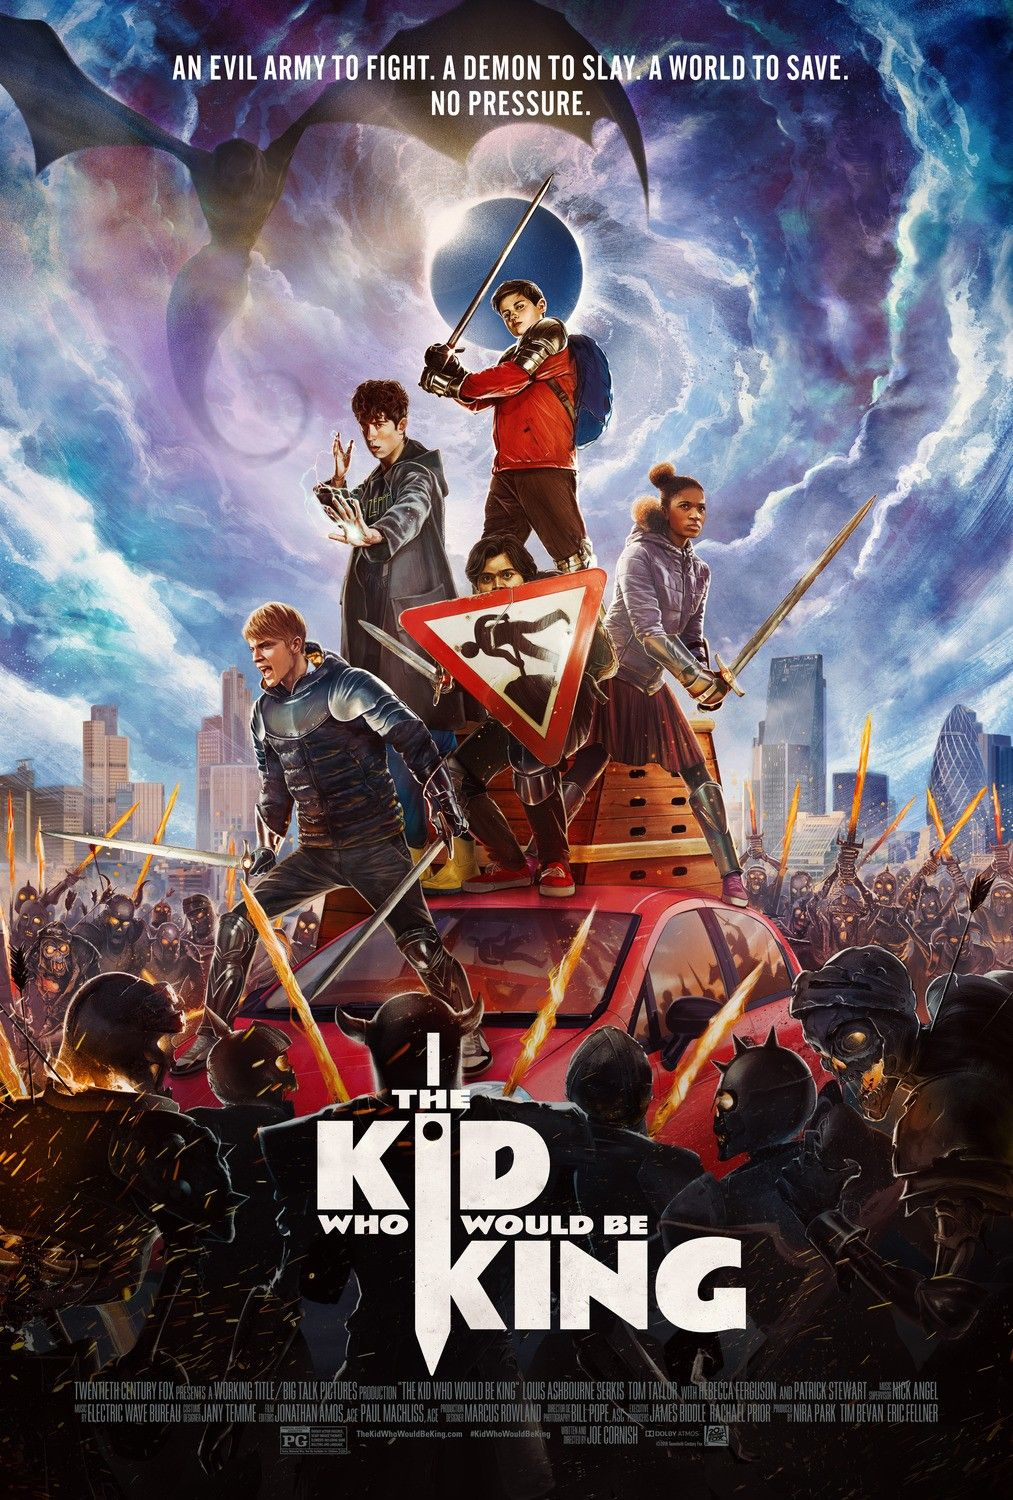 The Kid Who Would Be King Filmes Completos 1080p Filmes